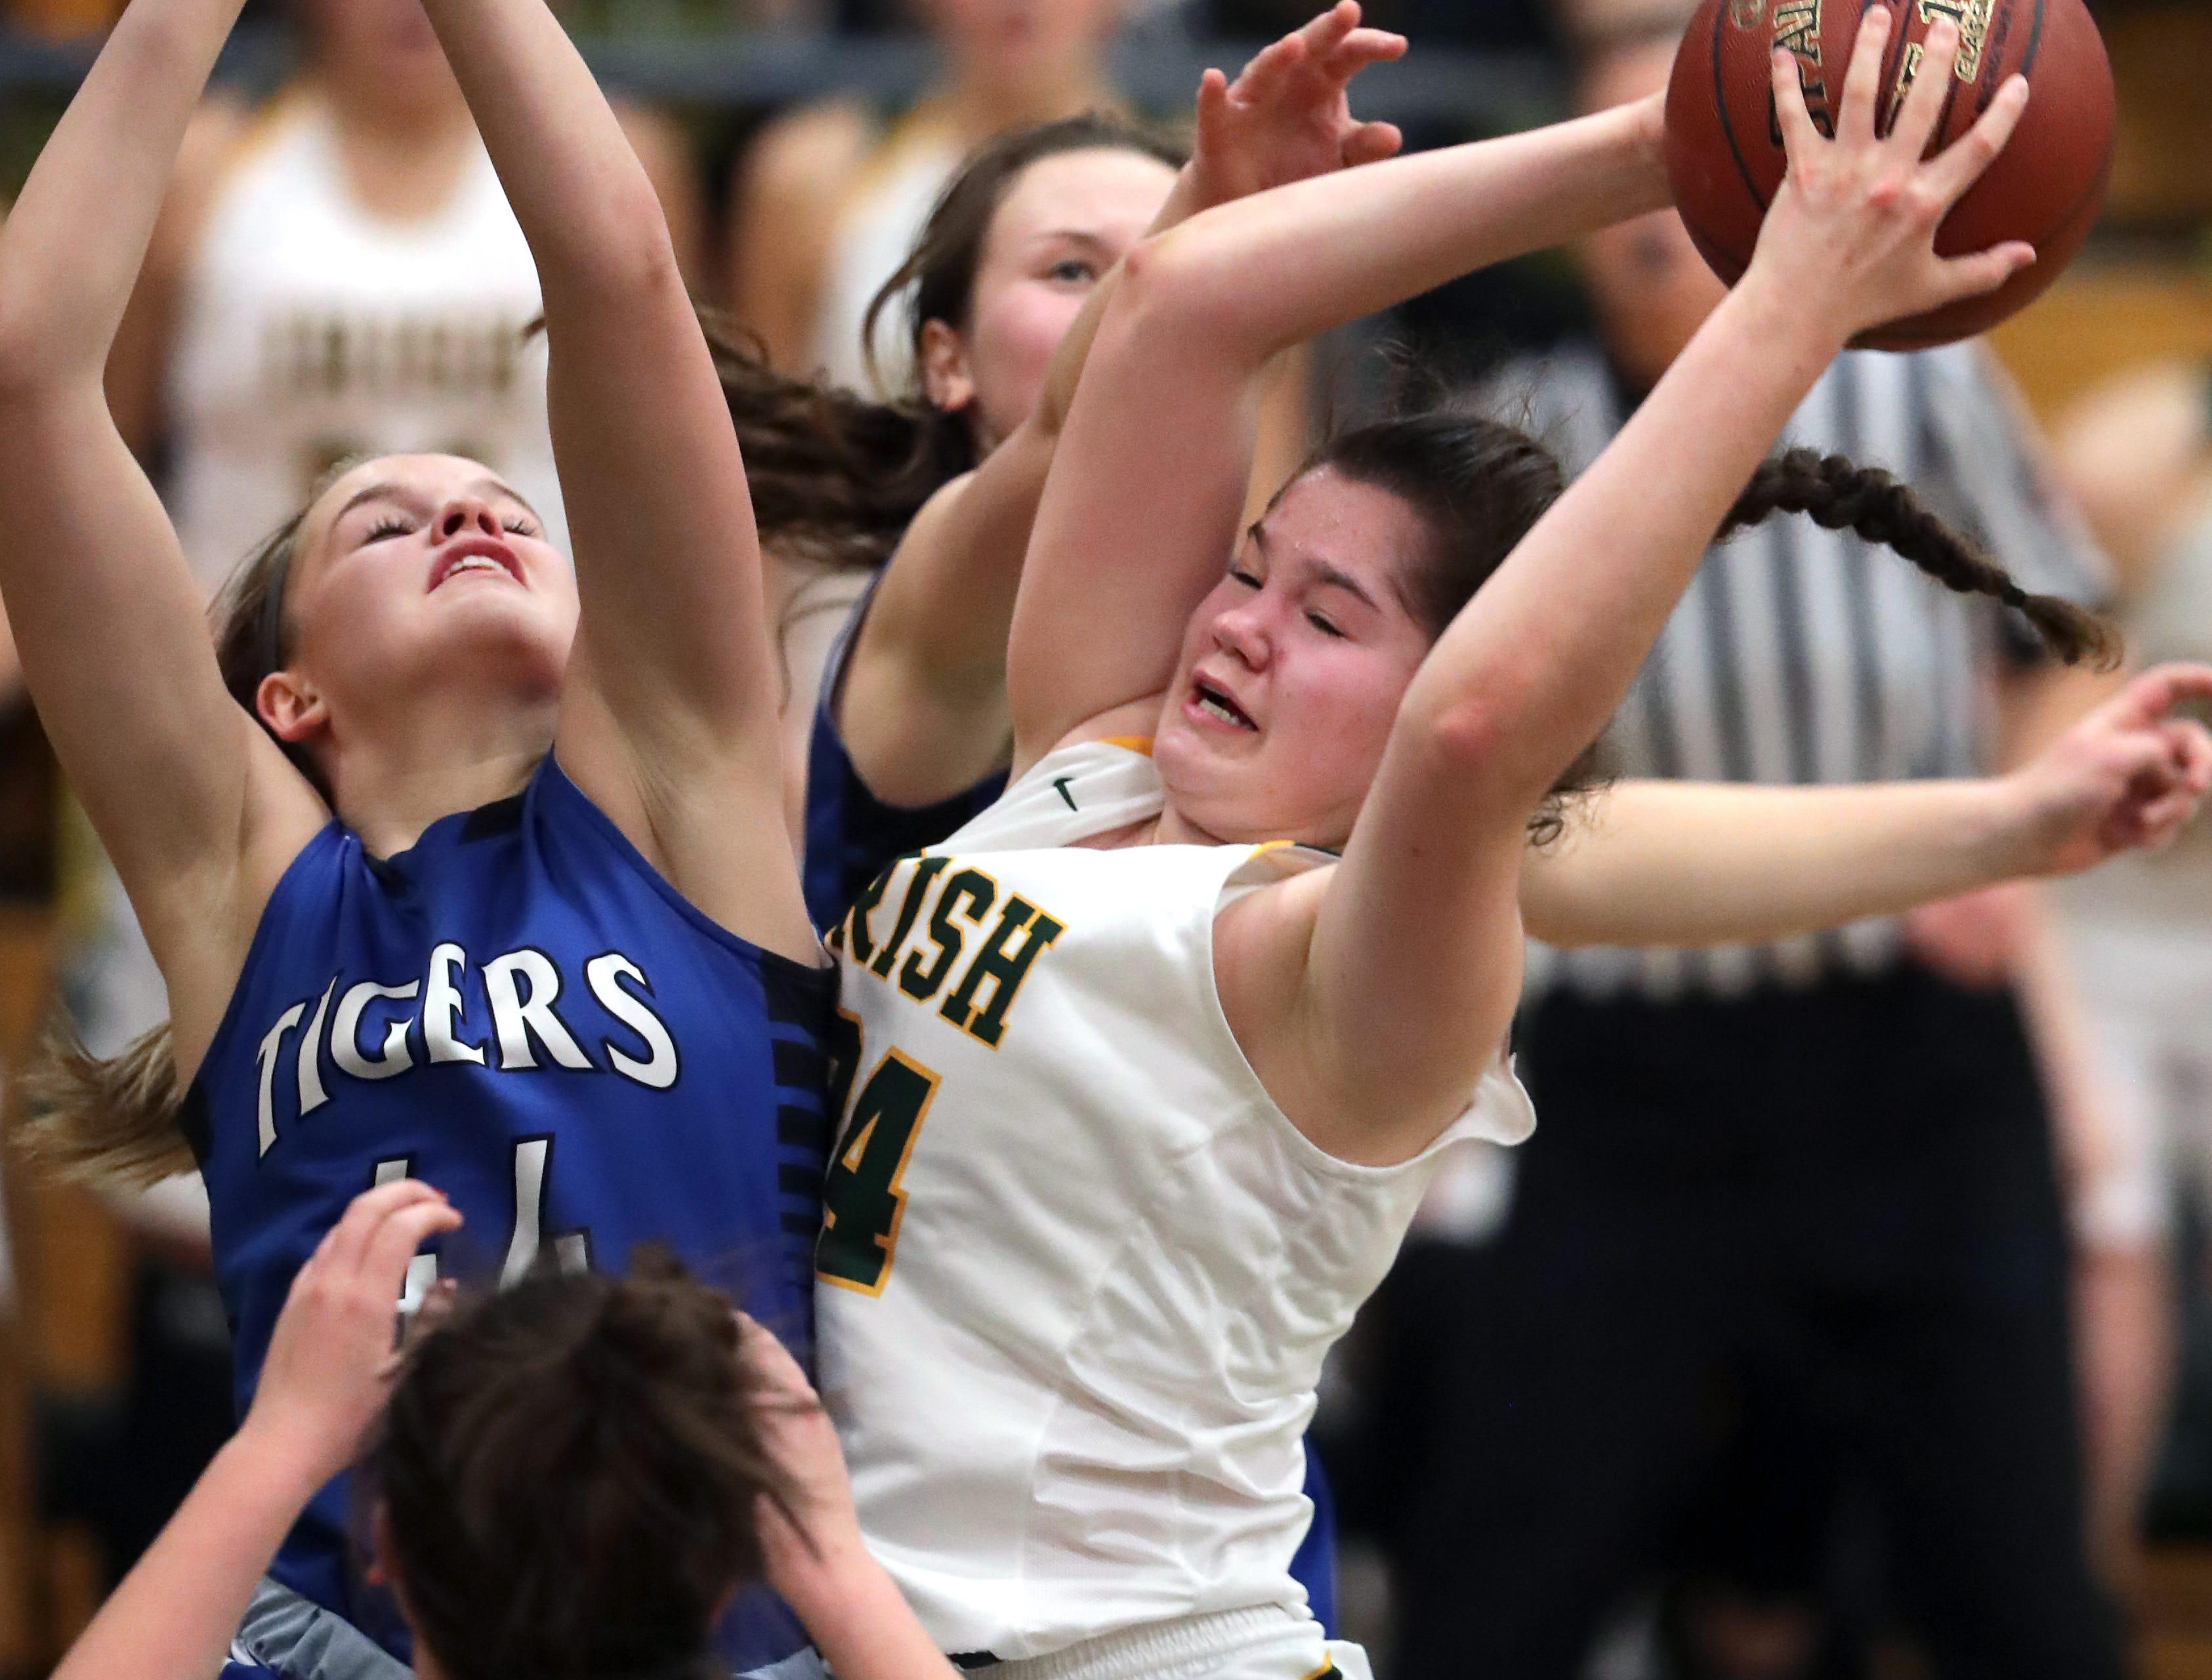 Freedom High School's #34 Linnea Willer against Wrightstown High School's #33 Dayna Van Egeren, #44 Ella Diny and #1 Bridget Froehlke, back, during their North Eastern Conference girls basketball game on Thursday, January 3, 2019, in Freedom, Wis. Freedom defeated Wrightstown 54 to 34.Wm. Glasheen/USA TODAY NETWORK-Wisconsin.